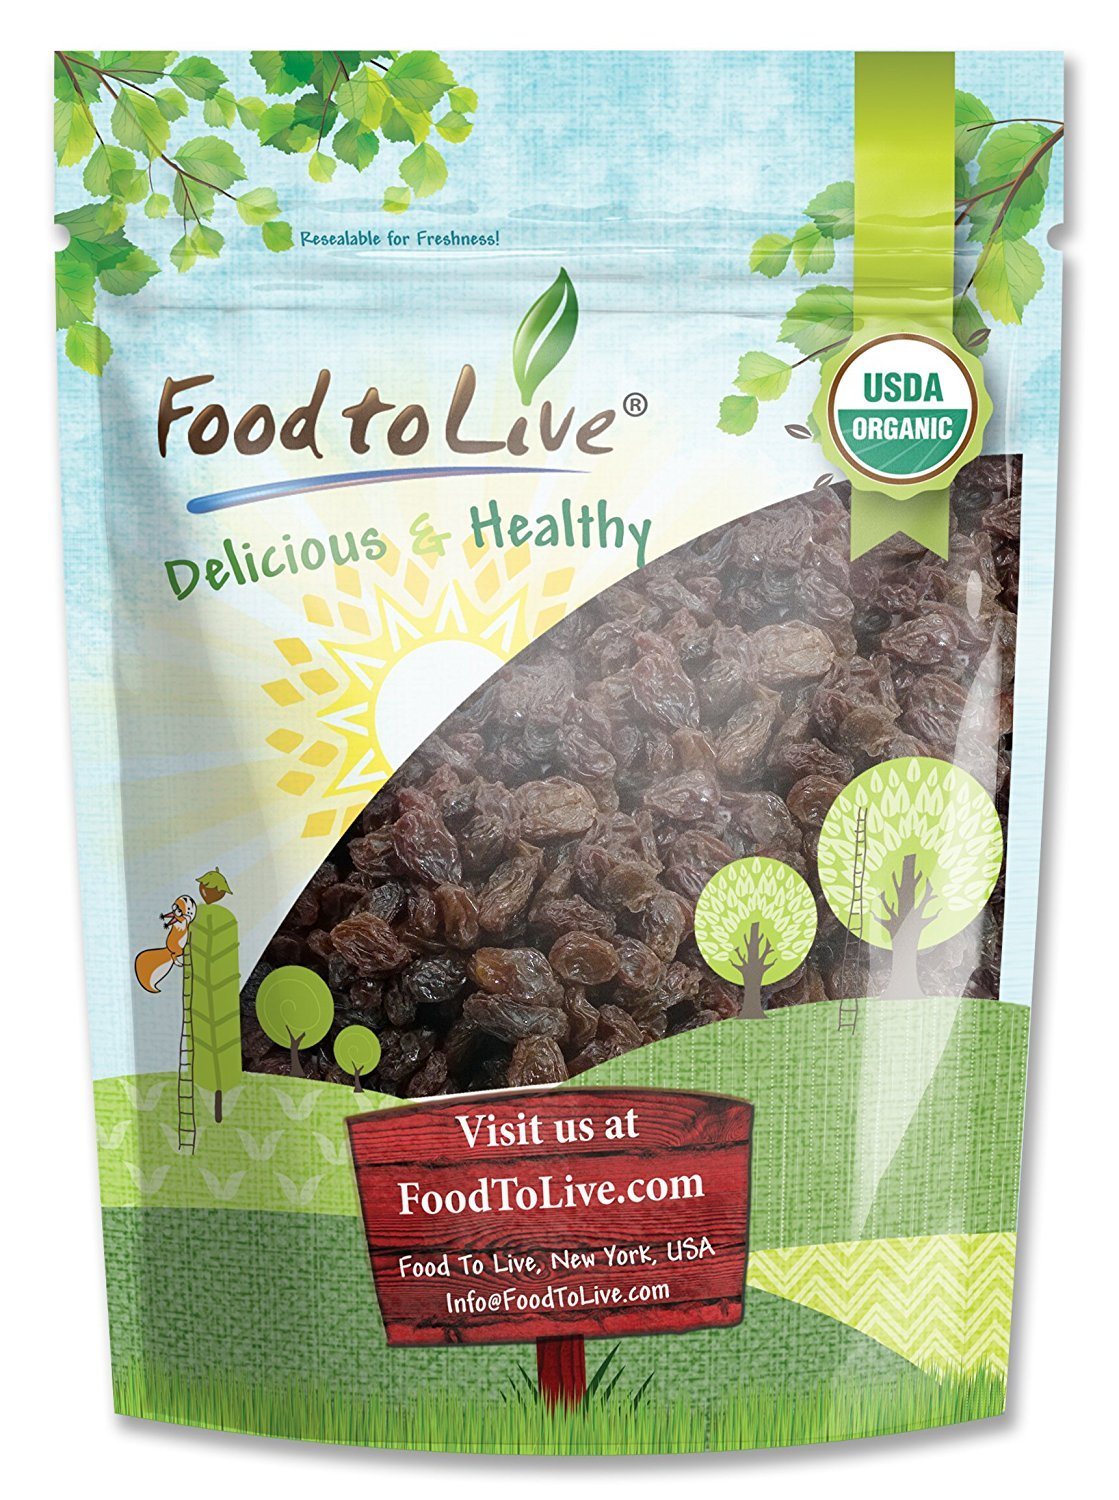 Organic California Thompson Seedless Raisins by Food To Live (Sun-Dried, Non-GMO, Kosher, Unsulphured, Bulk, Lightly Coated with Organic Sunflower Oil) - 8 Ounces by Food To Live